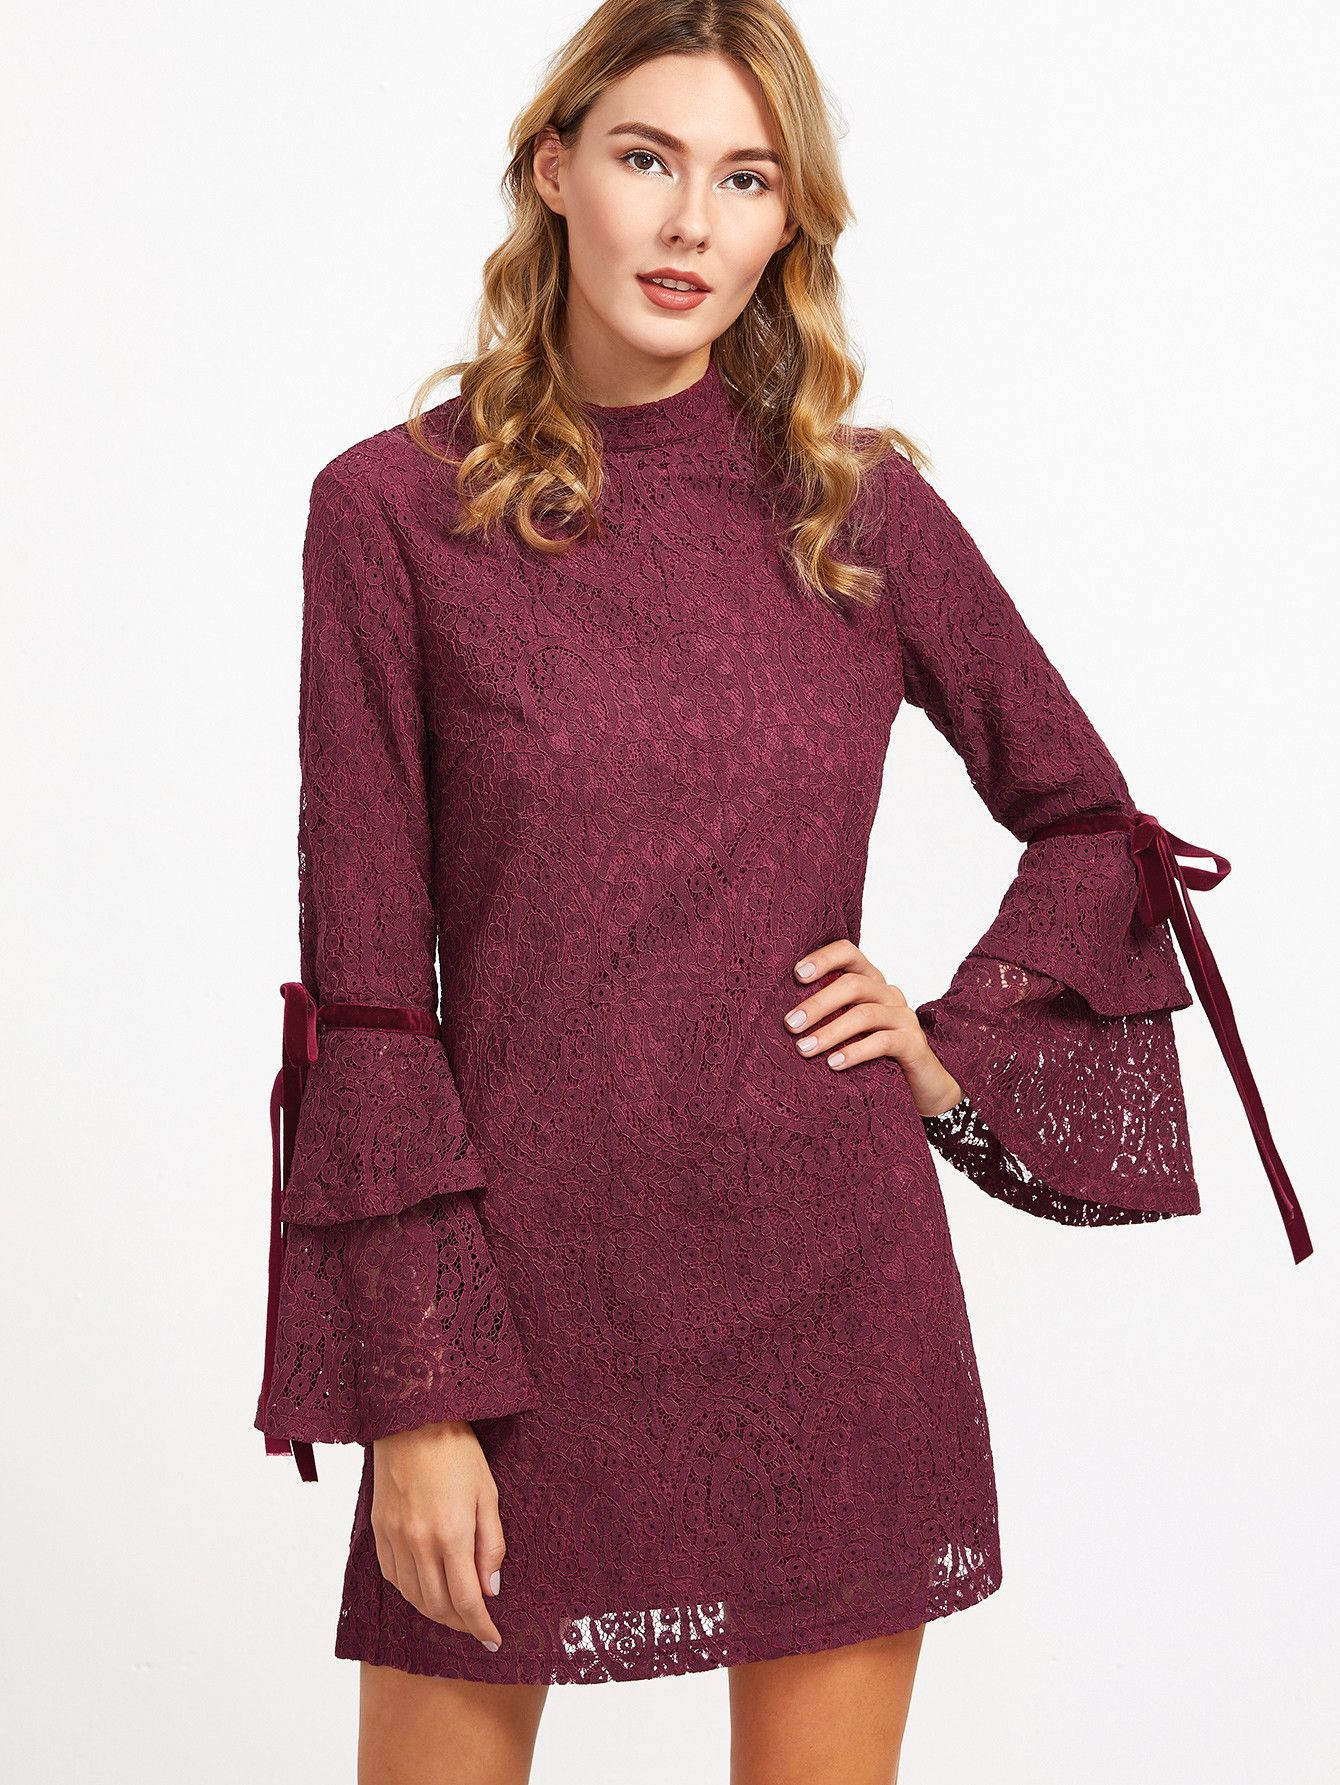 410b3e8a3adaa ... M:69cm, L:70cm Fabric: Fabric has no stretch Season: Fall Type: Tunic  Pattern Type: Plain Sleeve Length: Long Sleeve Color: Burgundy Dresses  Length: ...